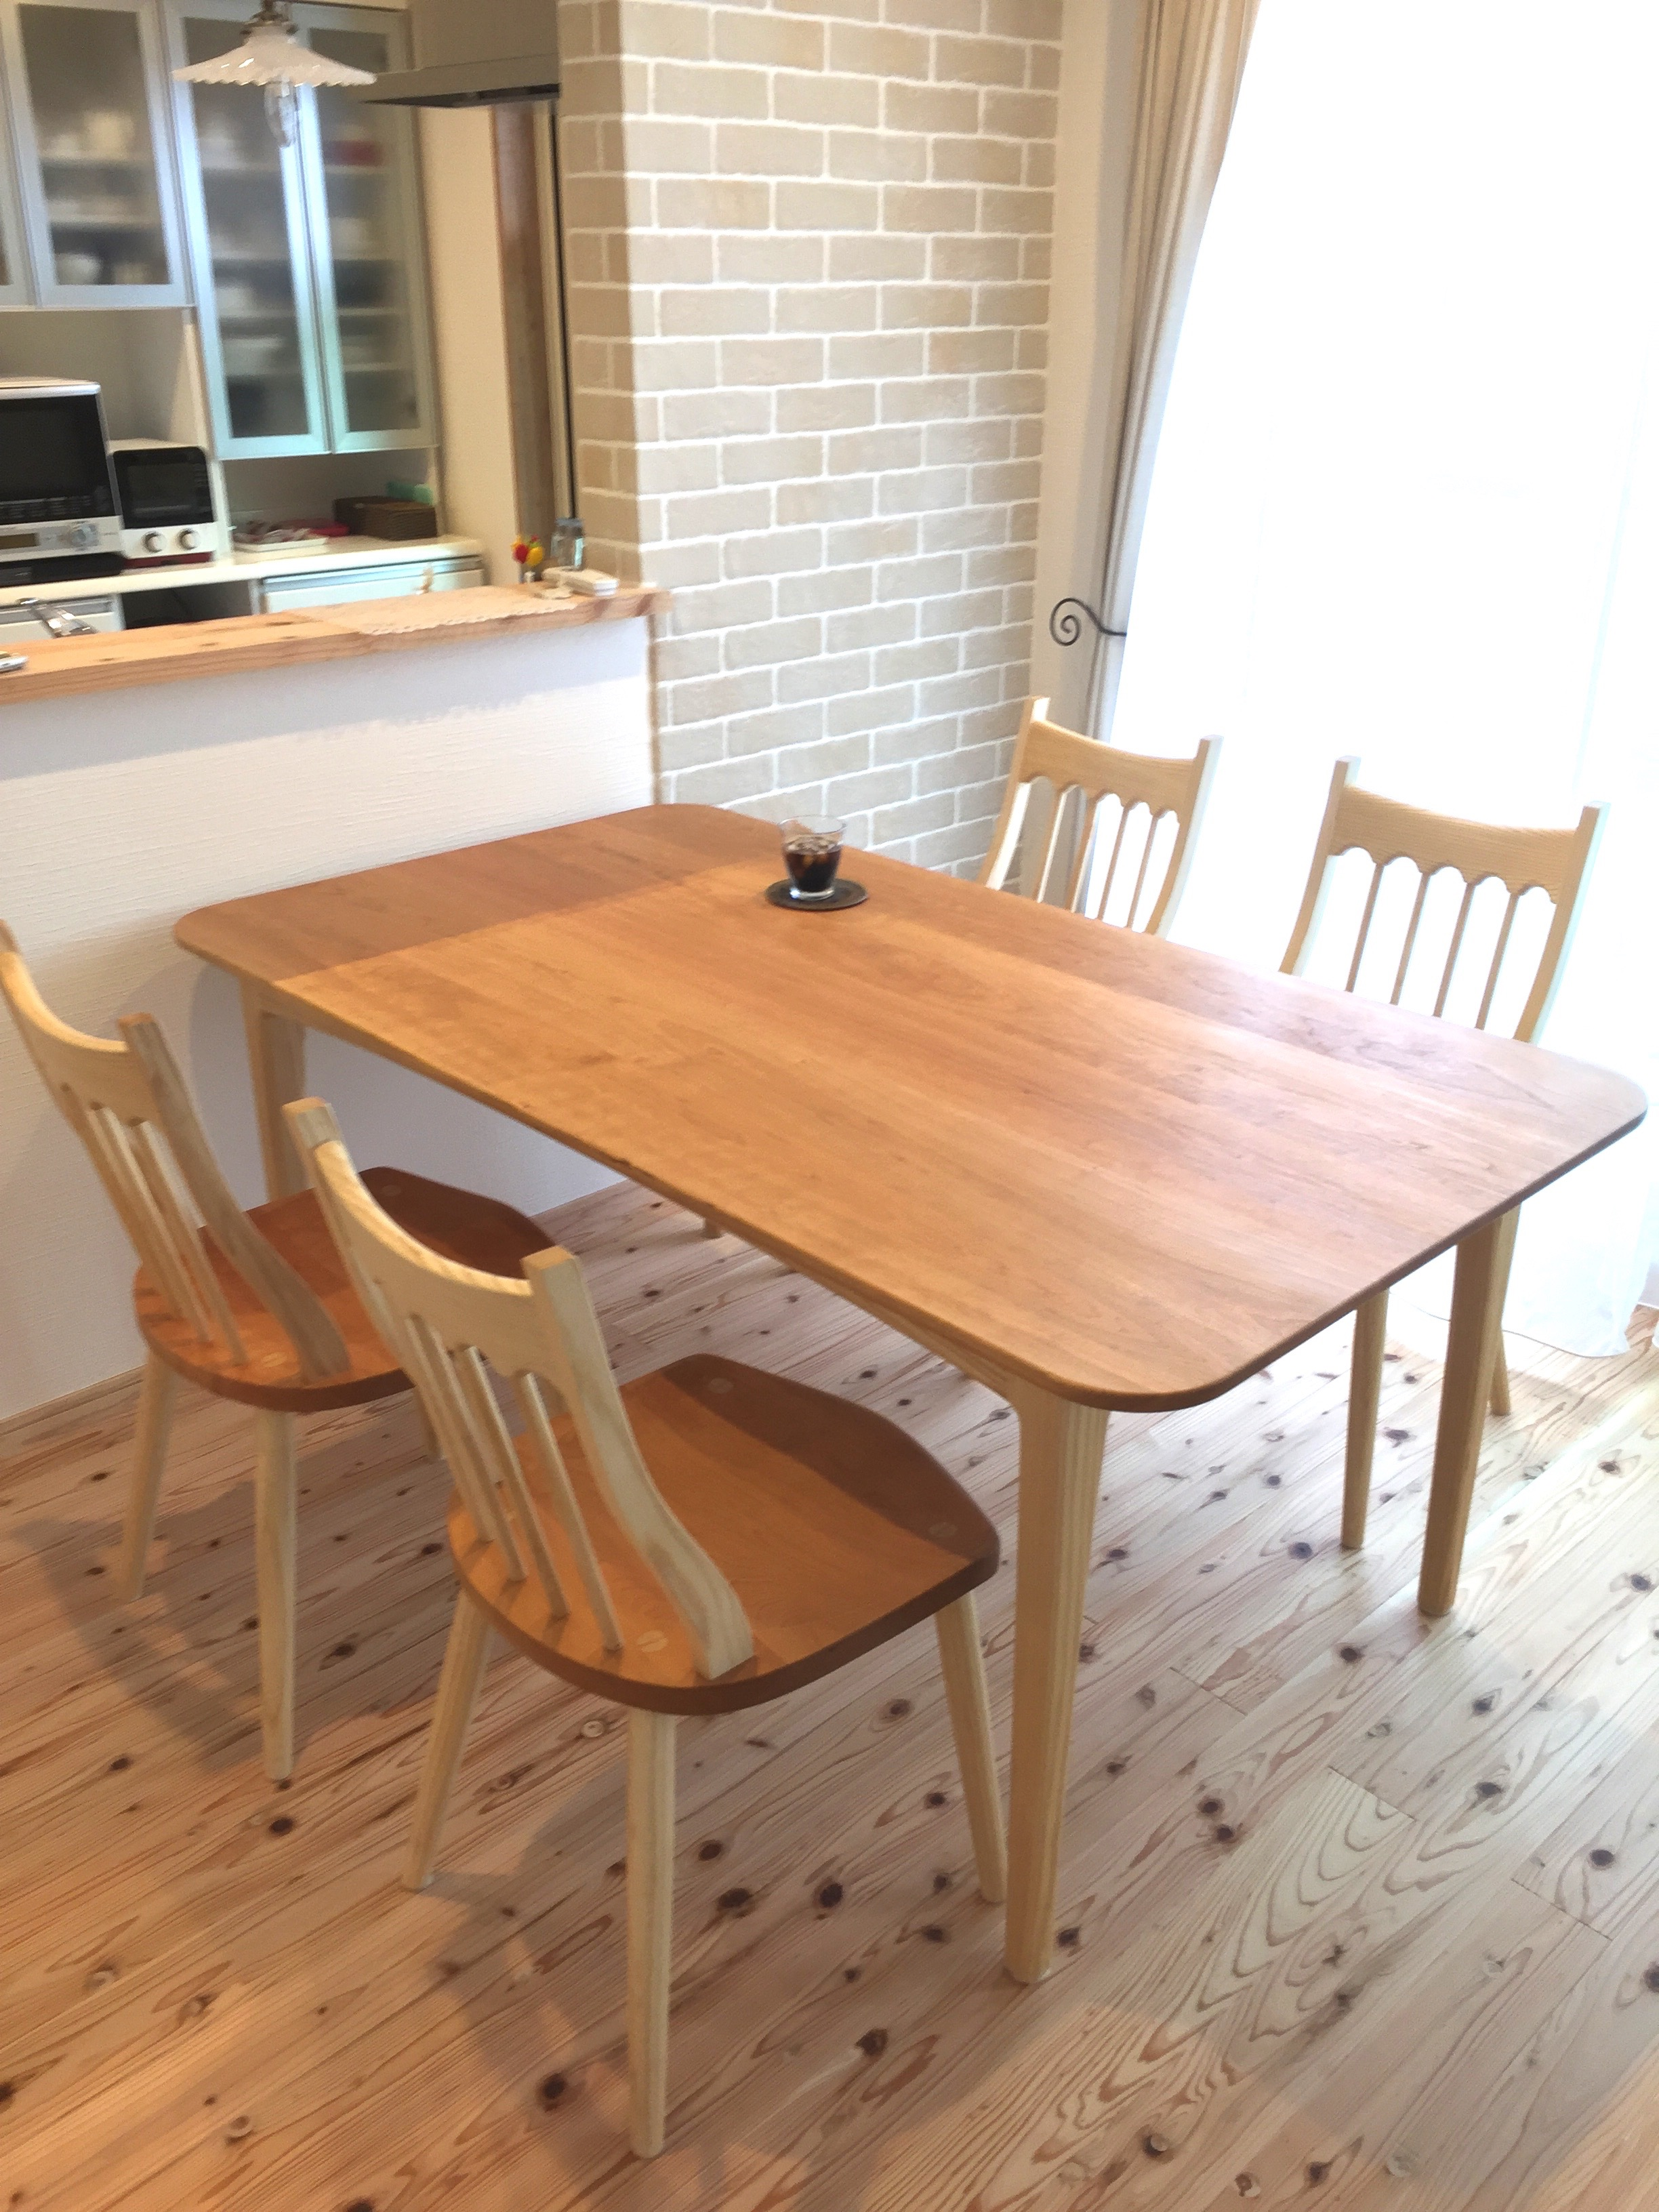 Dining Table Set1-7(order made)